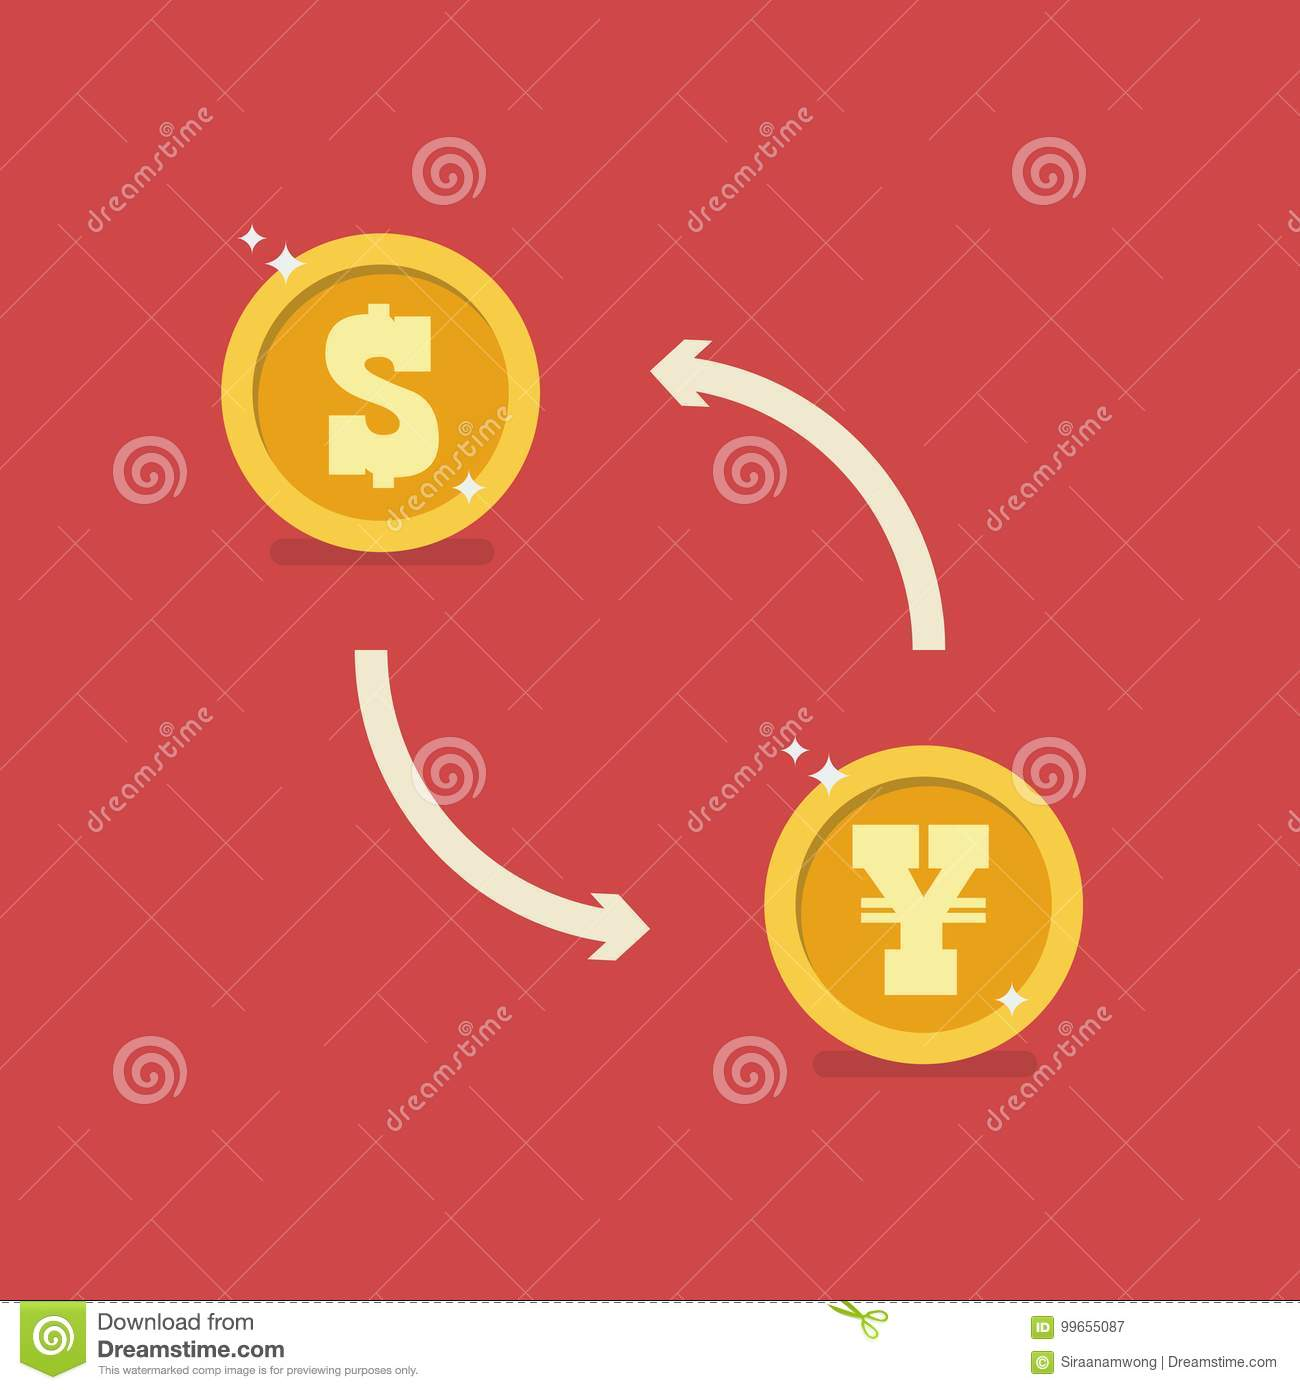 Dollar And Yen Currency Exchange Stock Vector - Illustration